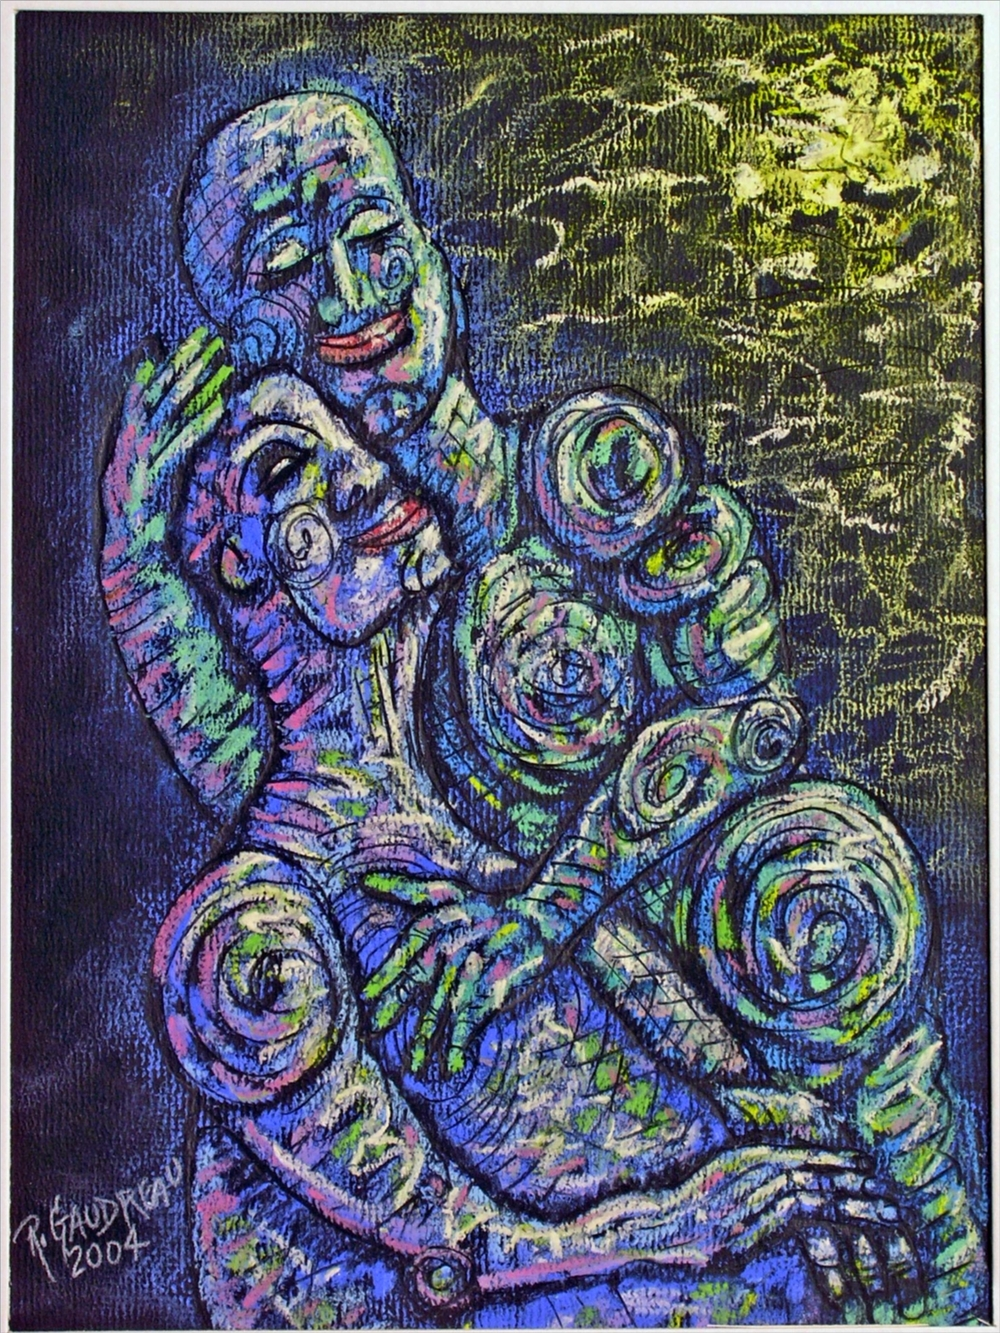 One Moment 2004 pastel, charcoal on paper 12 x 9 inches